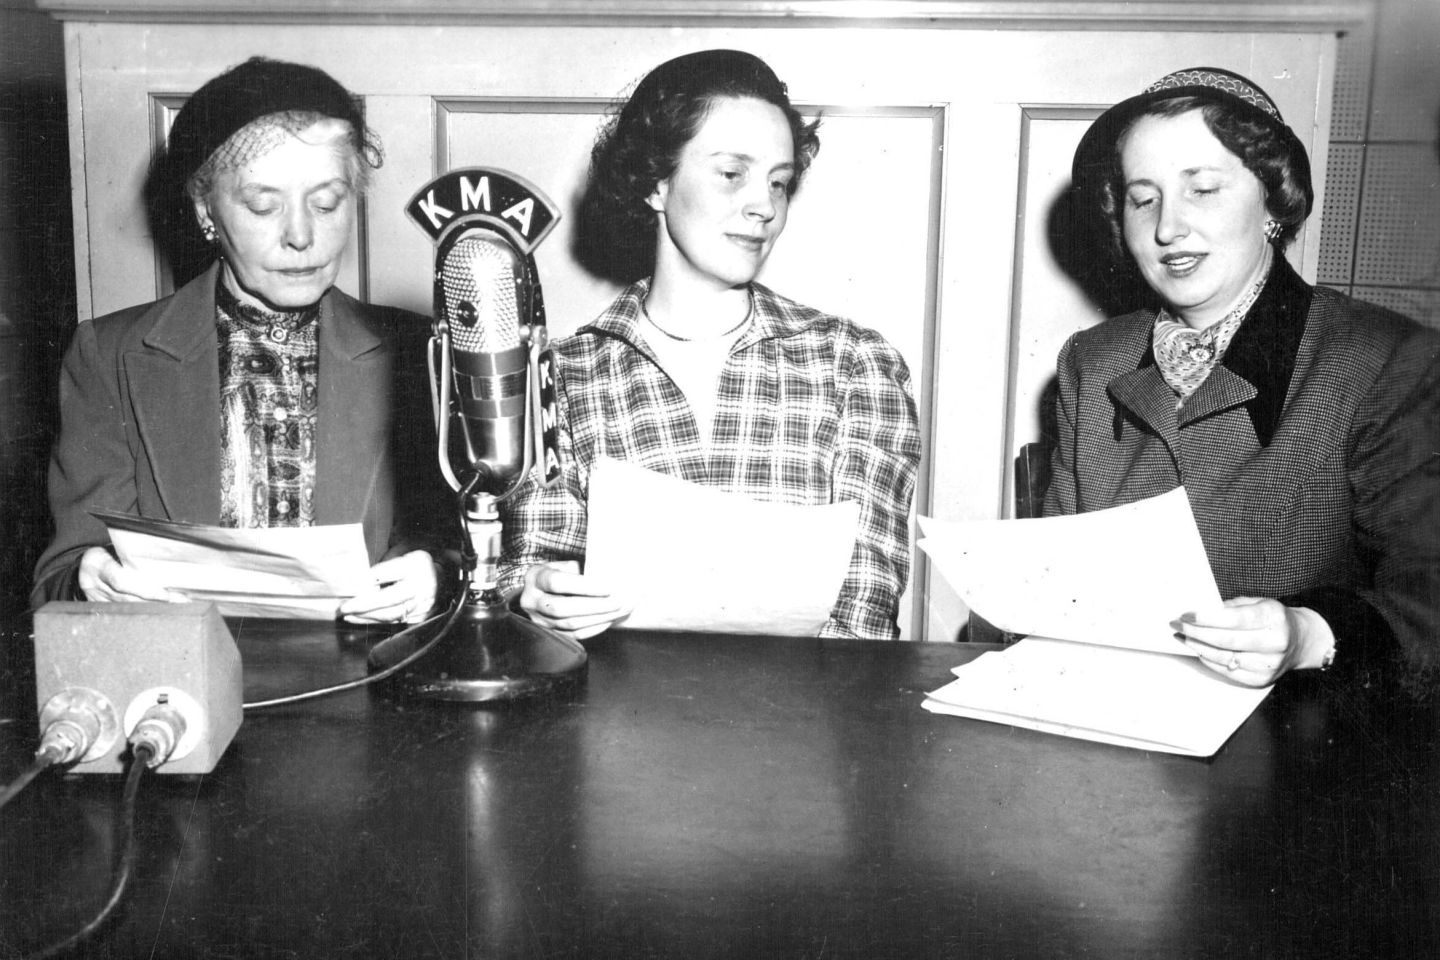 Food Podcasts 1.0: These Radio Pioneers Had It Down 90 Years Ago